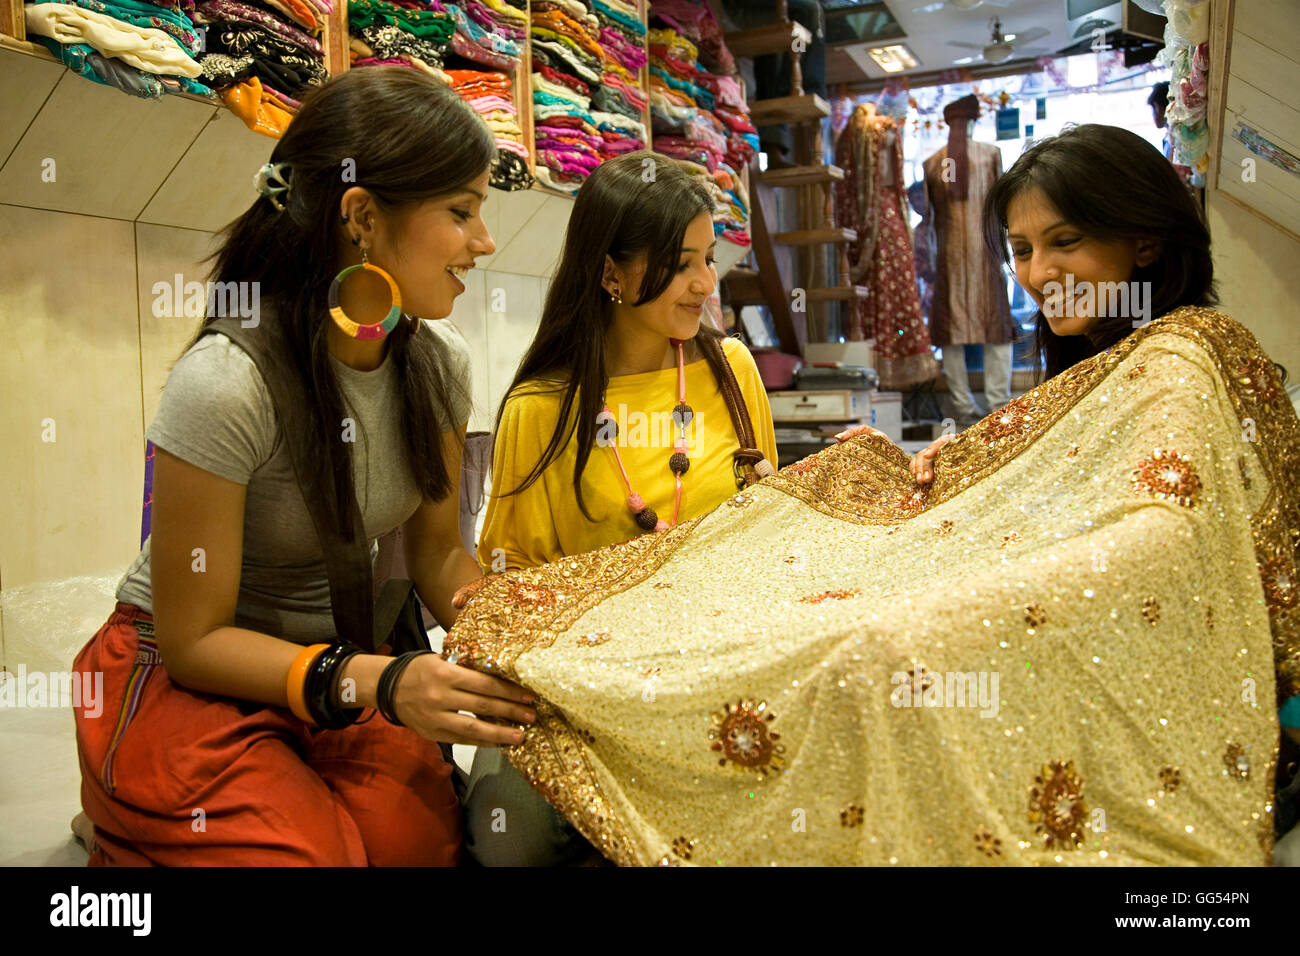 Girls at a garment shop Stock Photo